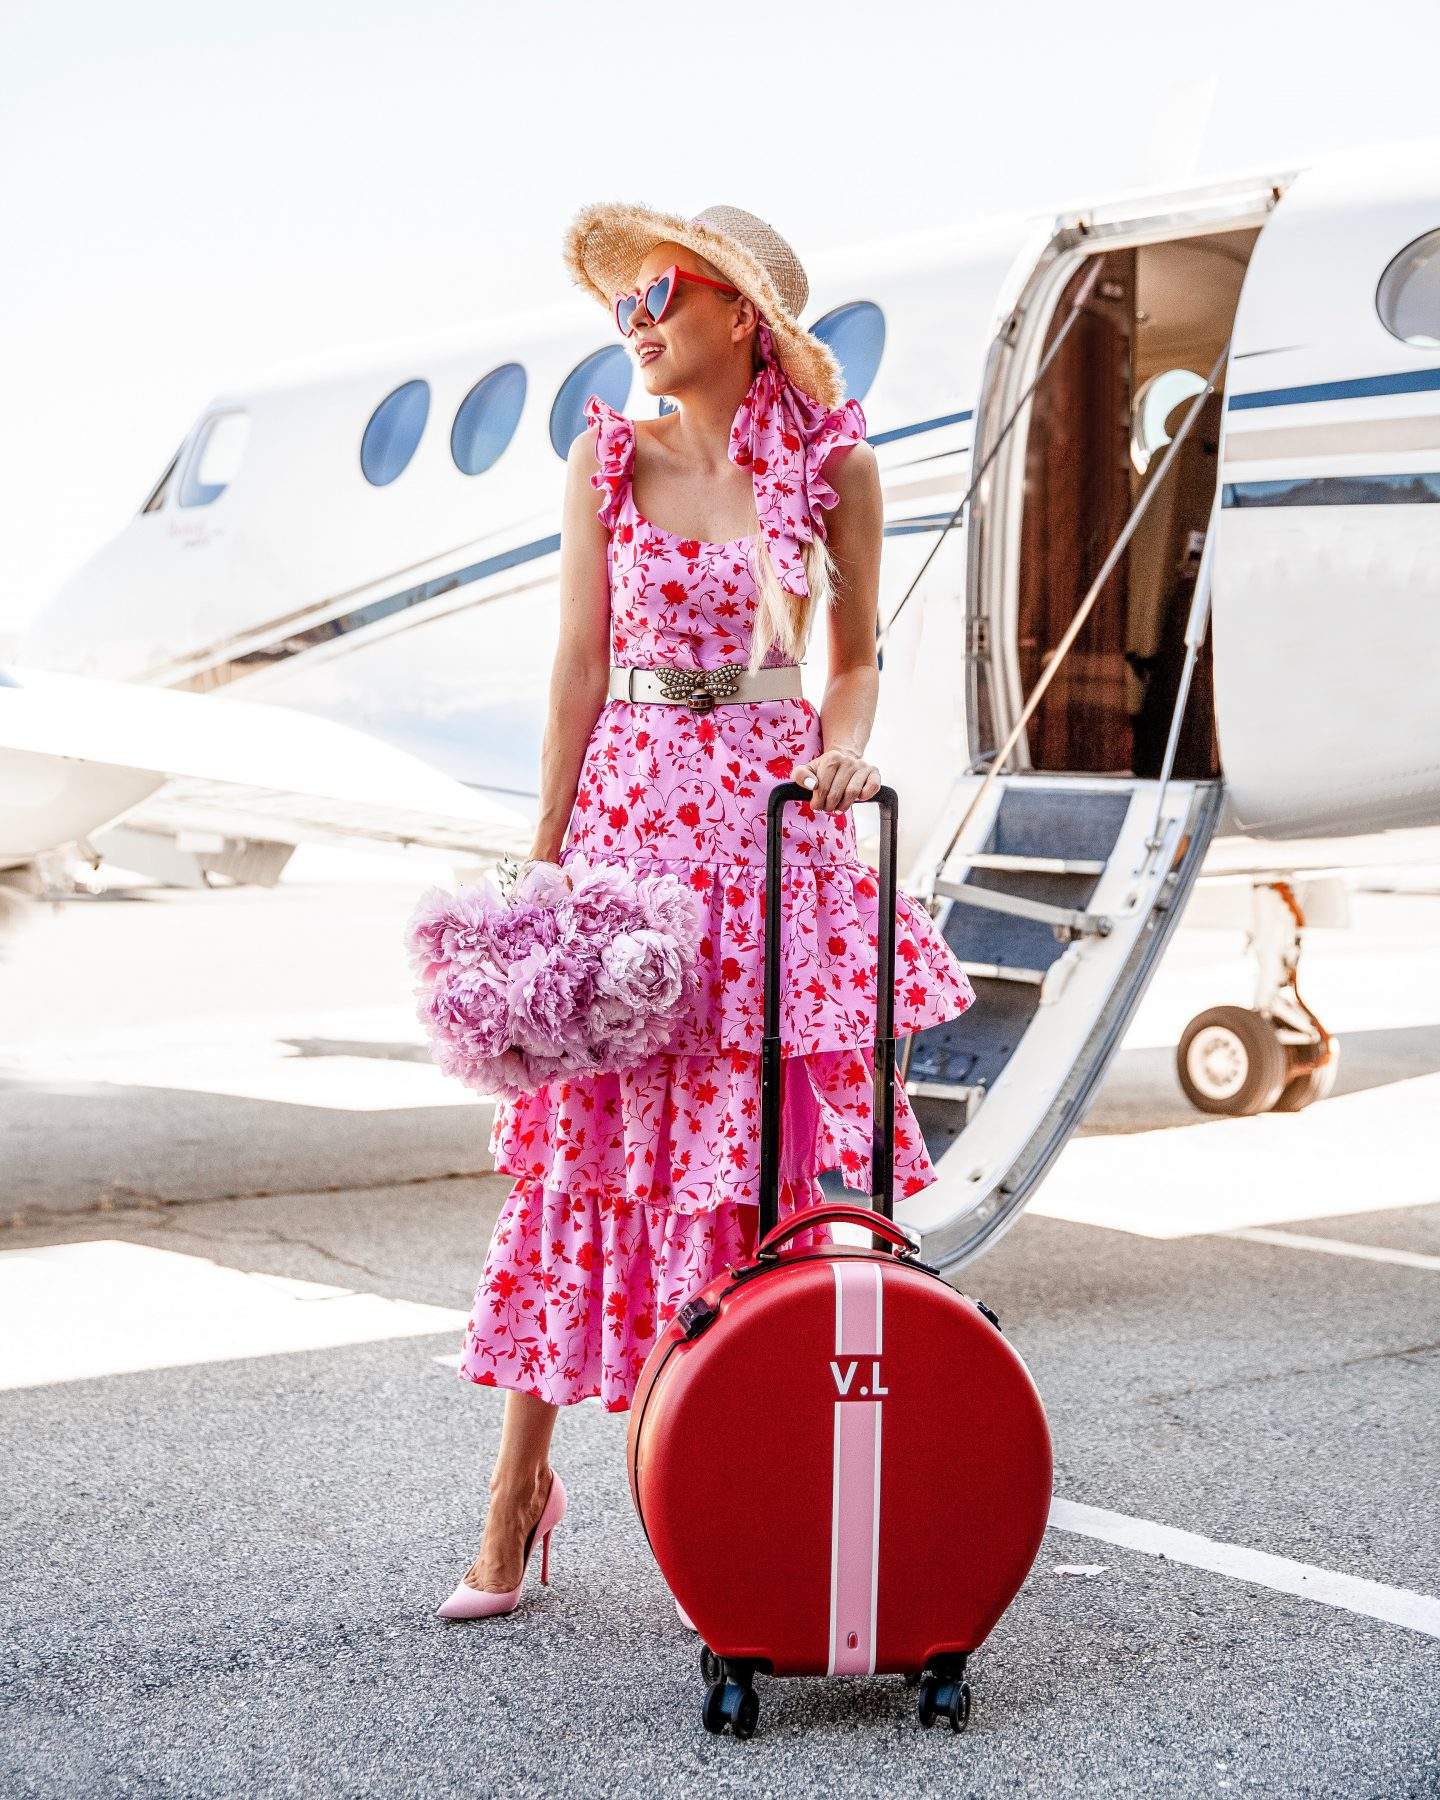 Best Personalized Brands featured by top US fashion blog, Lombard and Fifth: image of a woman wearing a Gucci queen bee leather belt, Aqua floral tiered maxi dress, Sam Edelman pointy pumps, and an ASOS straw hat, with a The Daily Edited monogrammed carry on suitcase